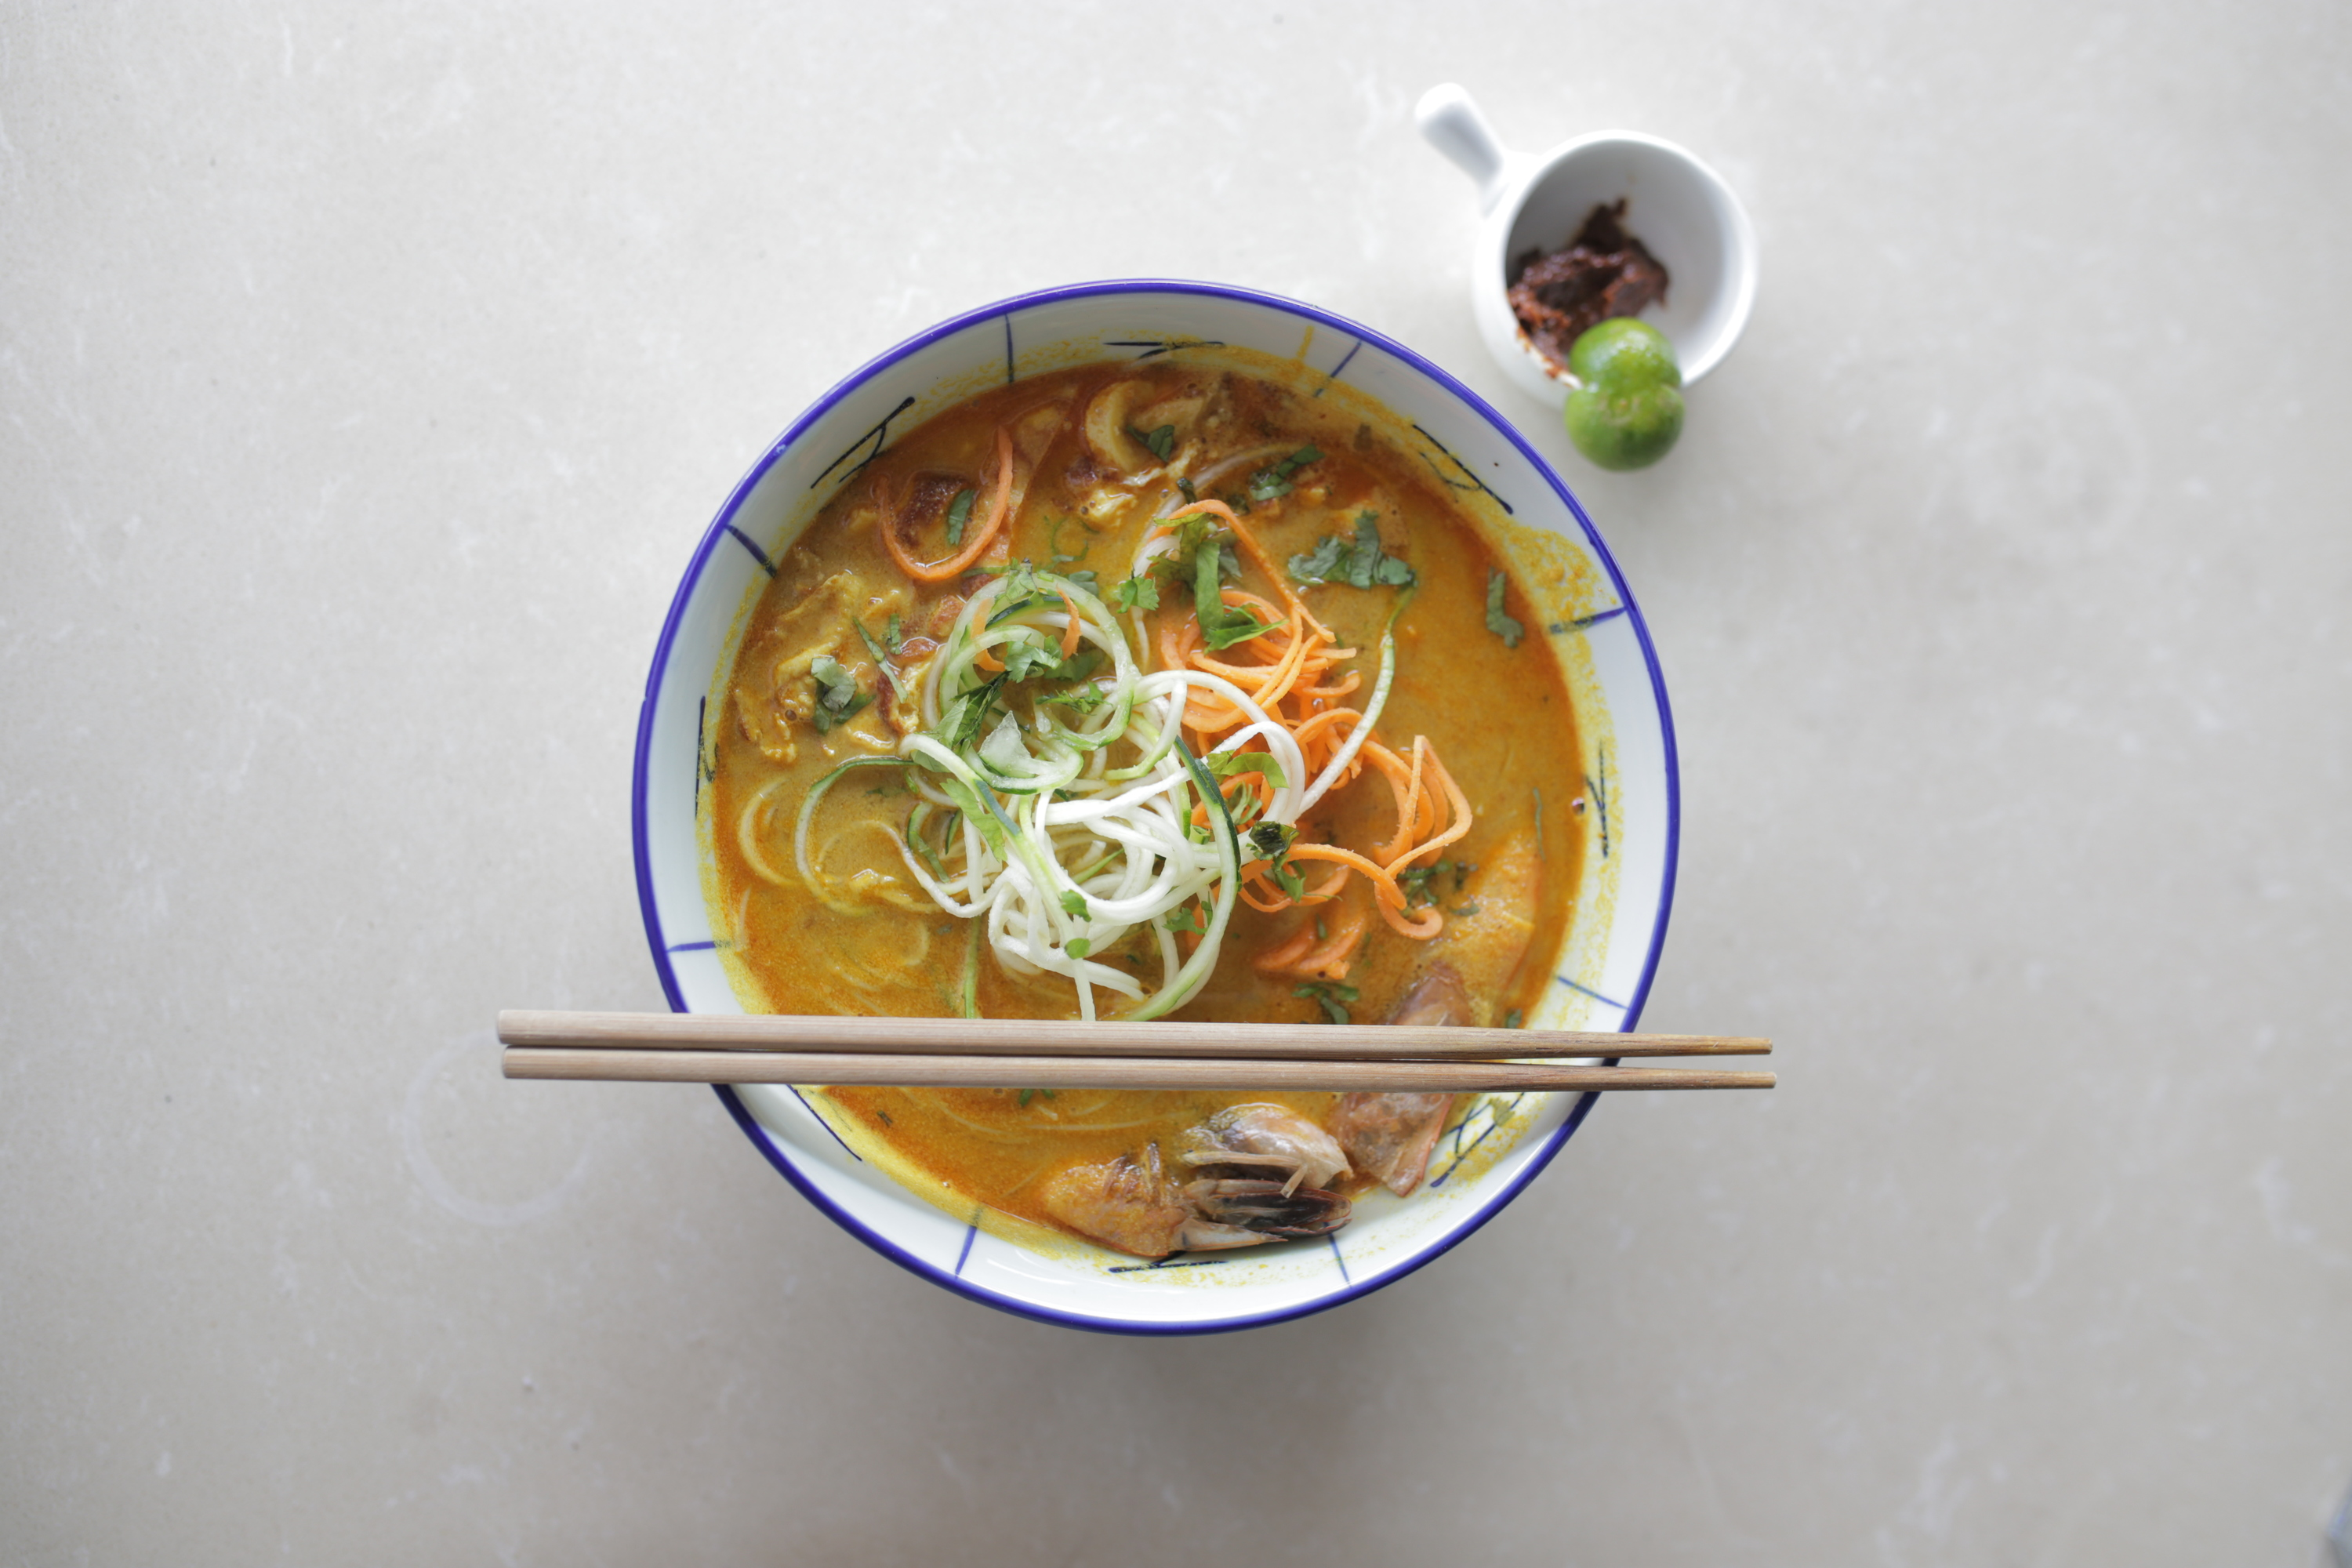 Borneo laksa at Ashley's by Living Food